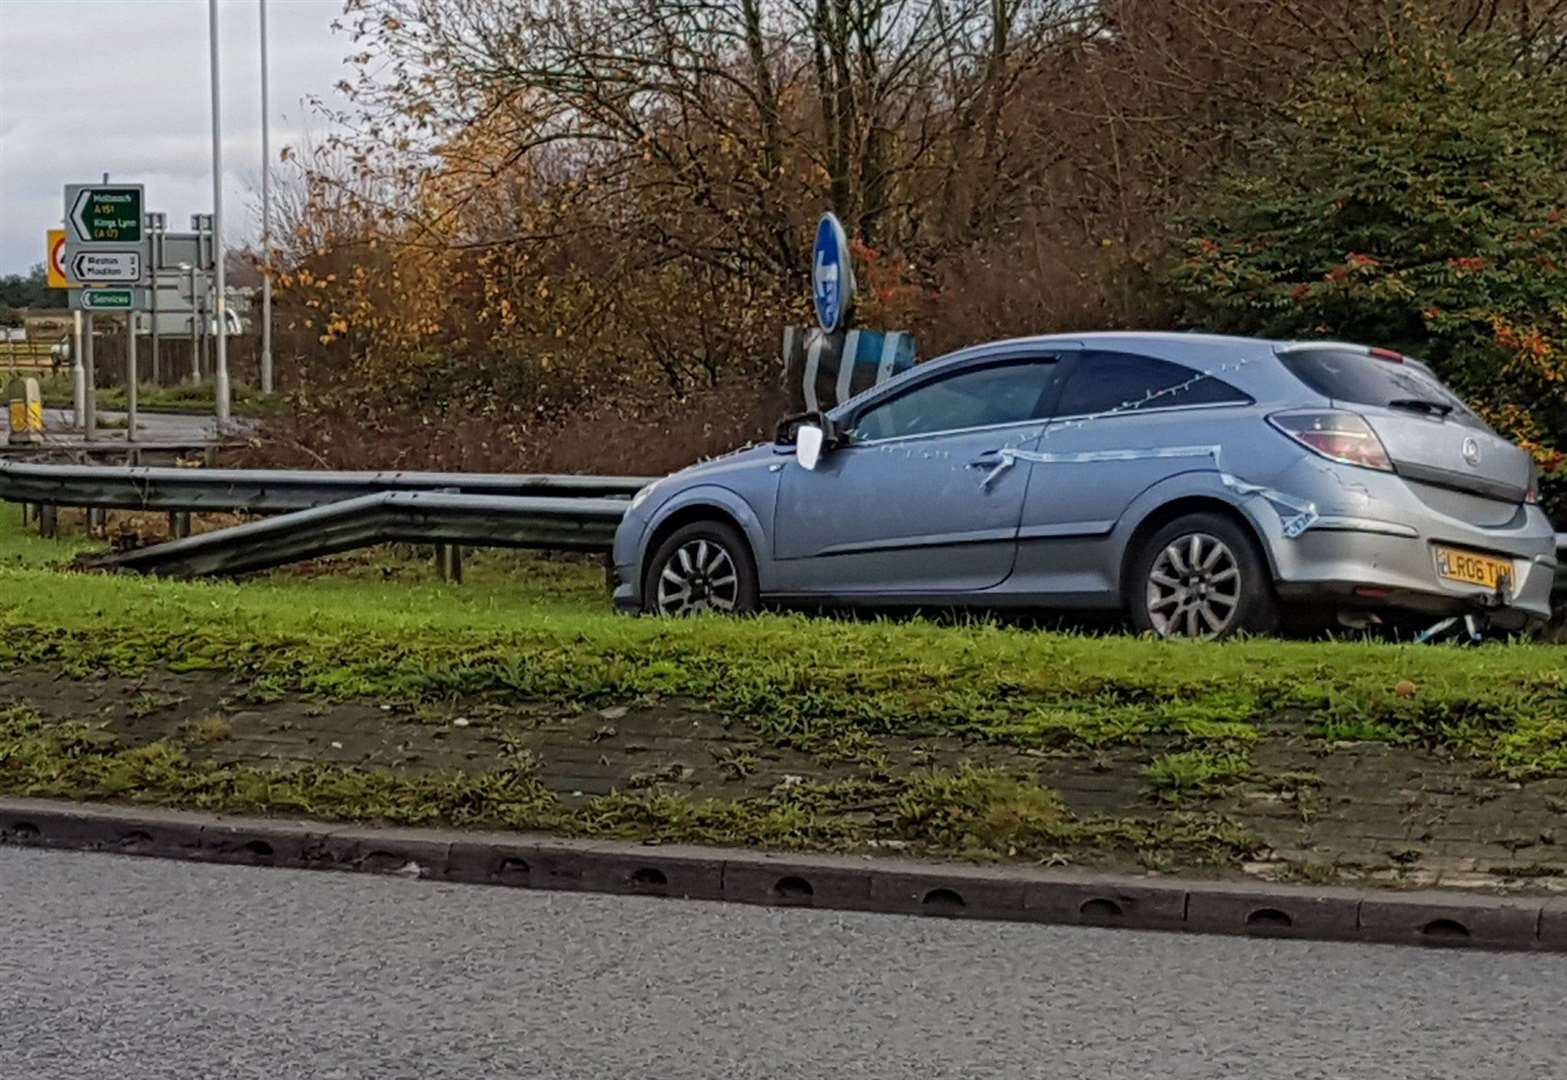 Work starts to remove Christmas lights car from roundabout